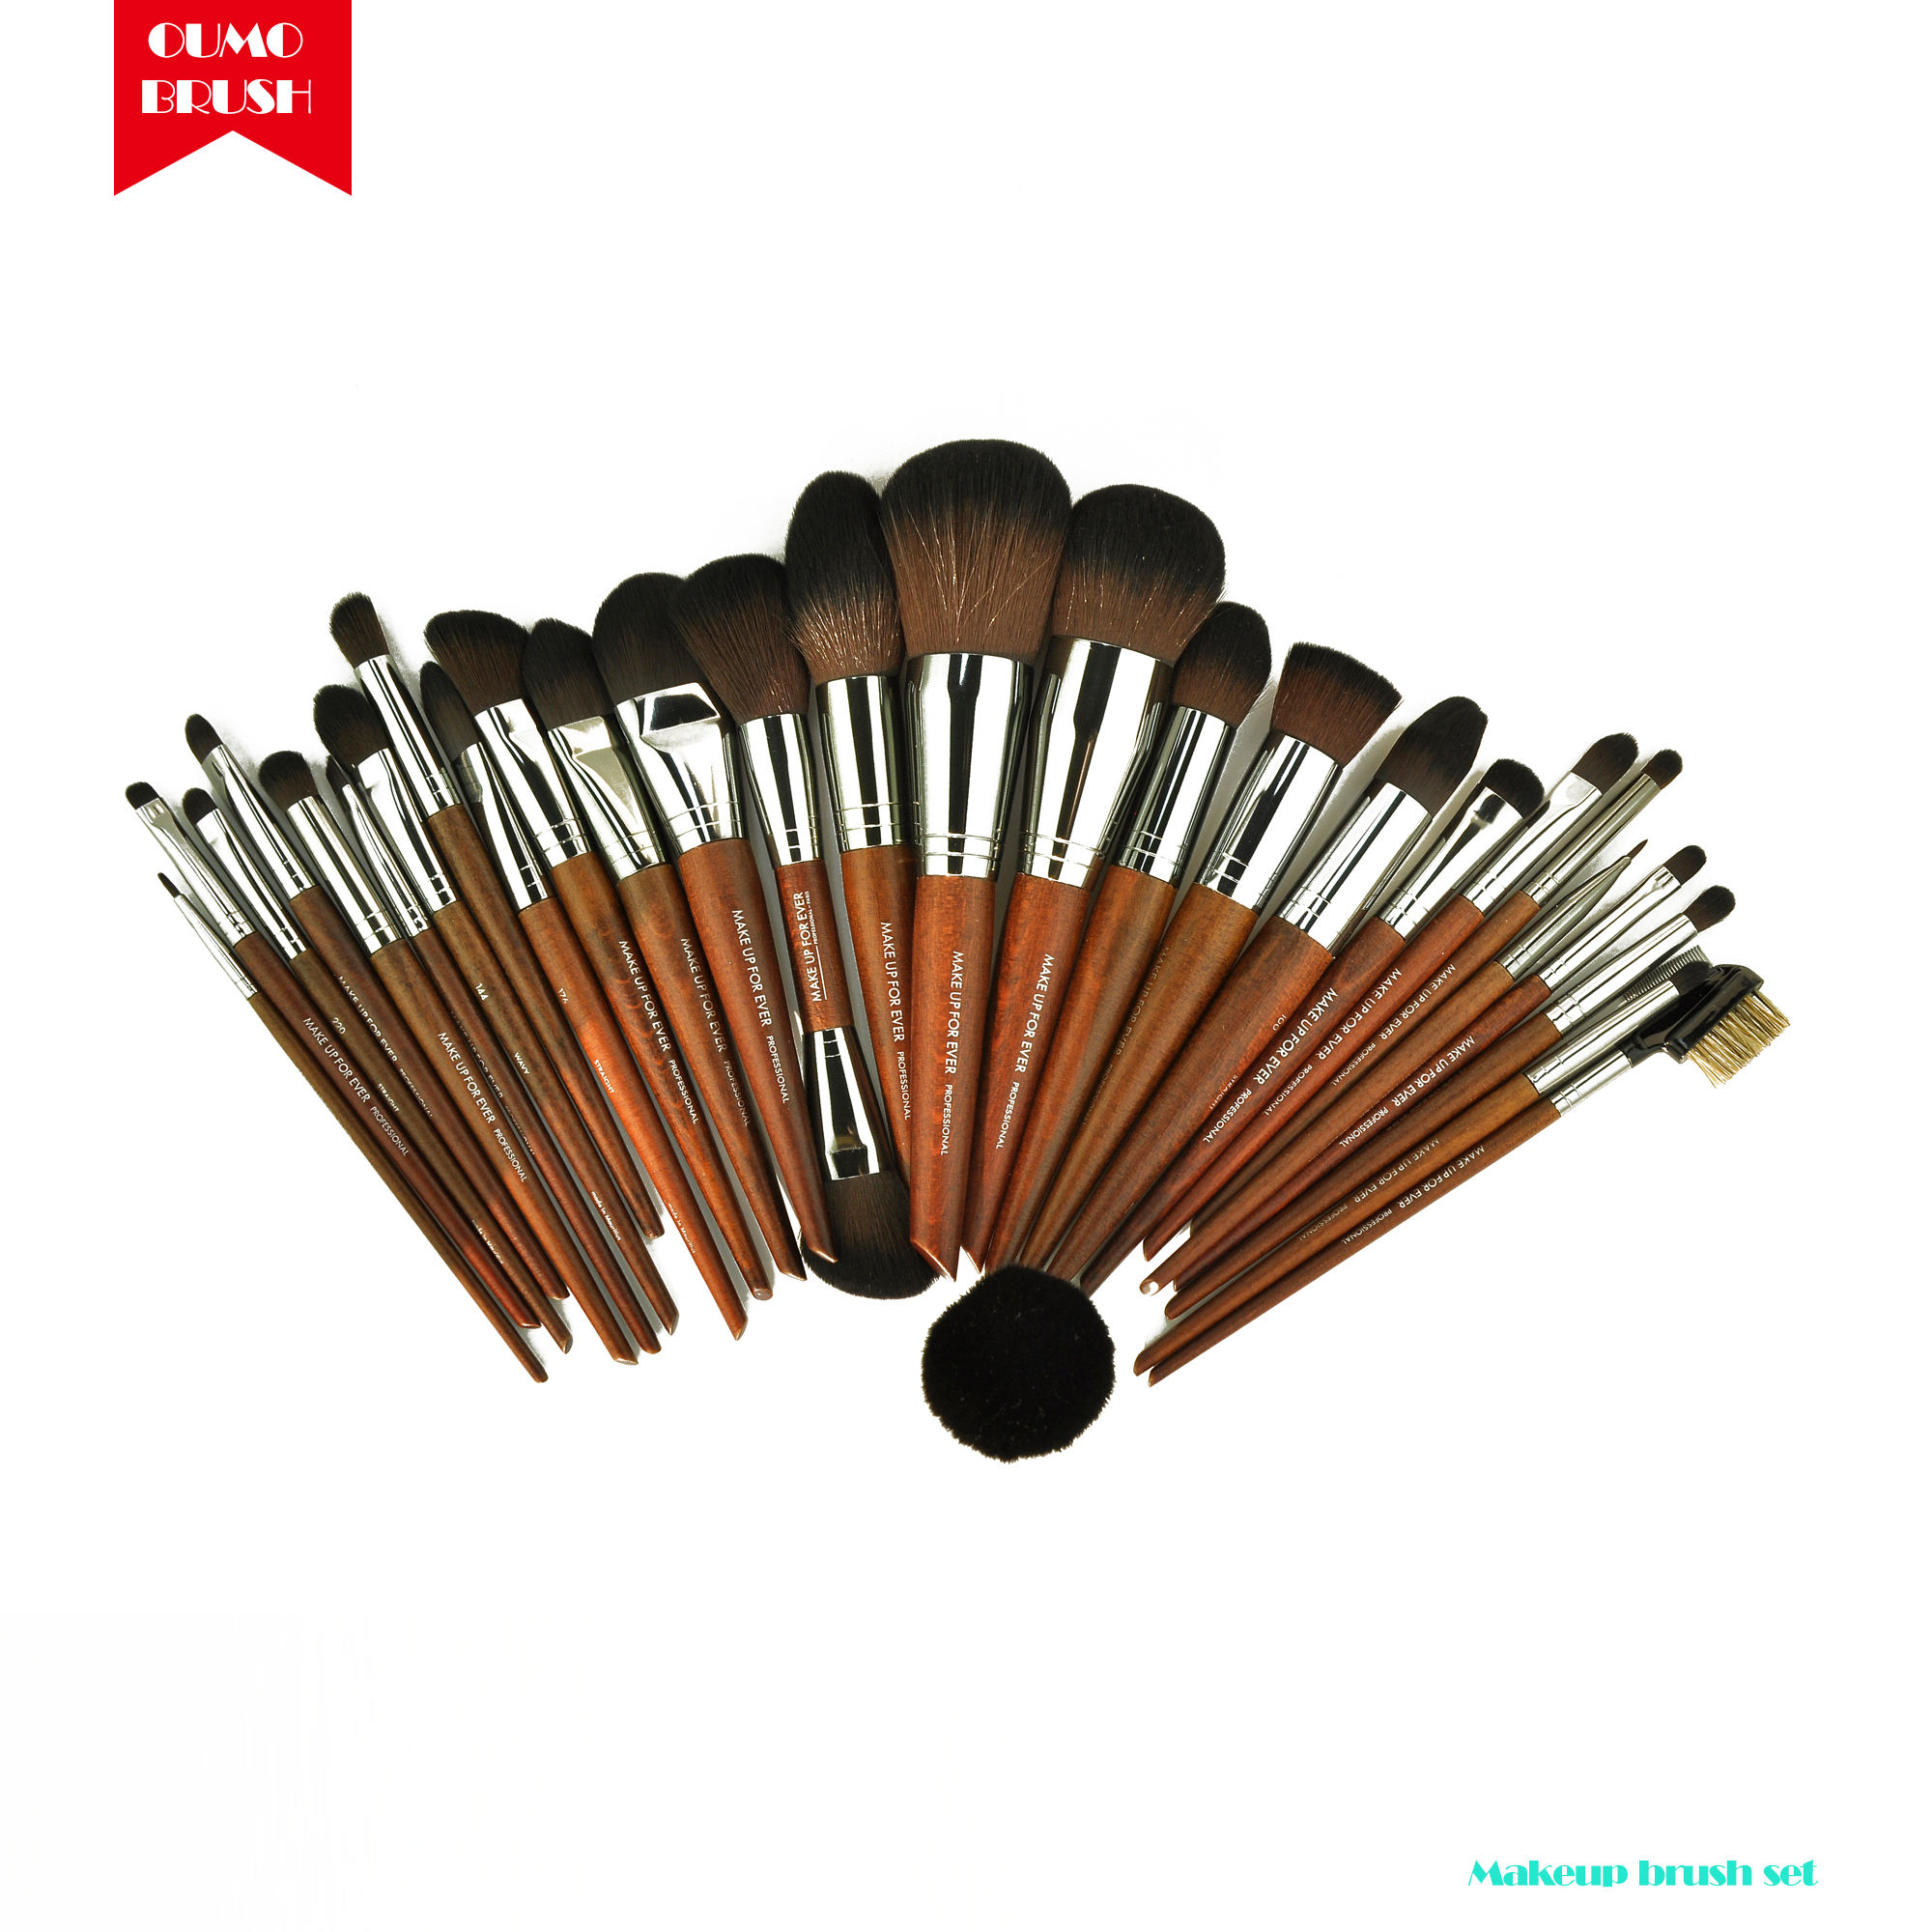 OUMO-High quality 35 makeup brush set professional makeup artist preferred forever makeup brushes private label